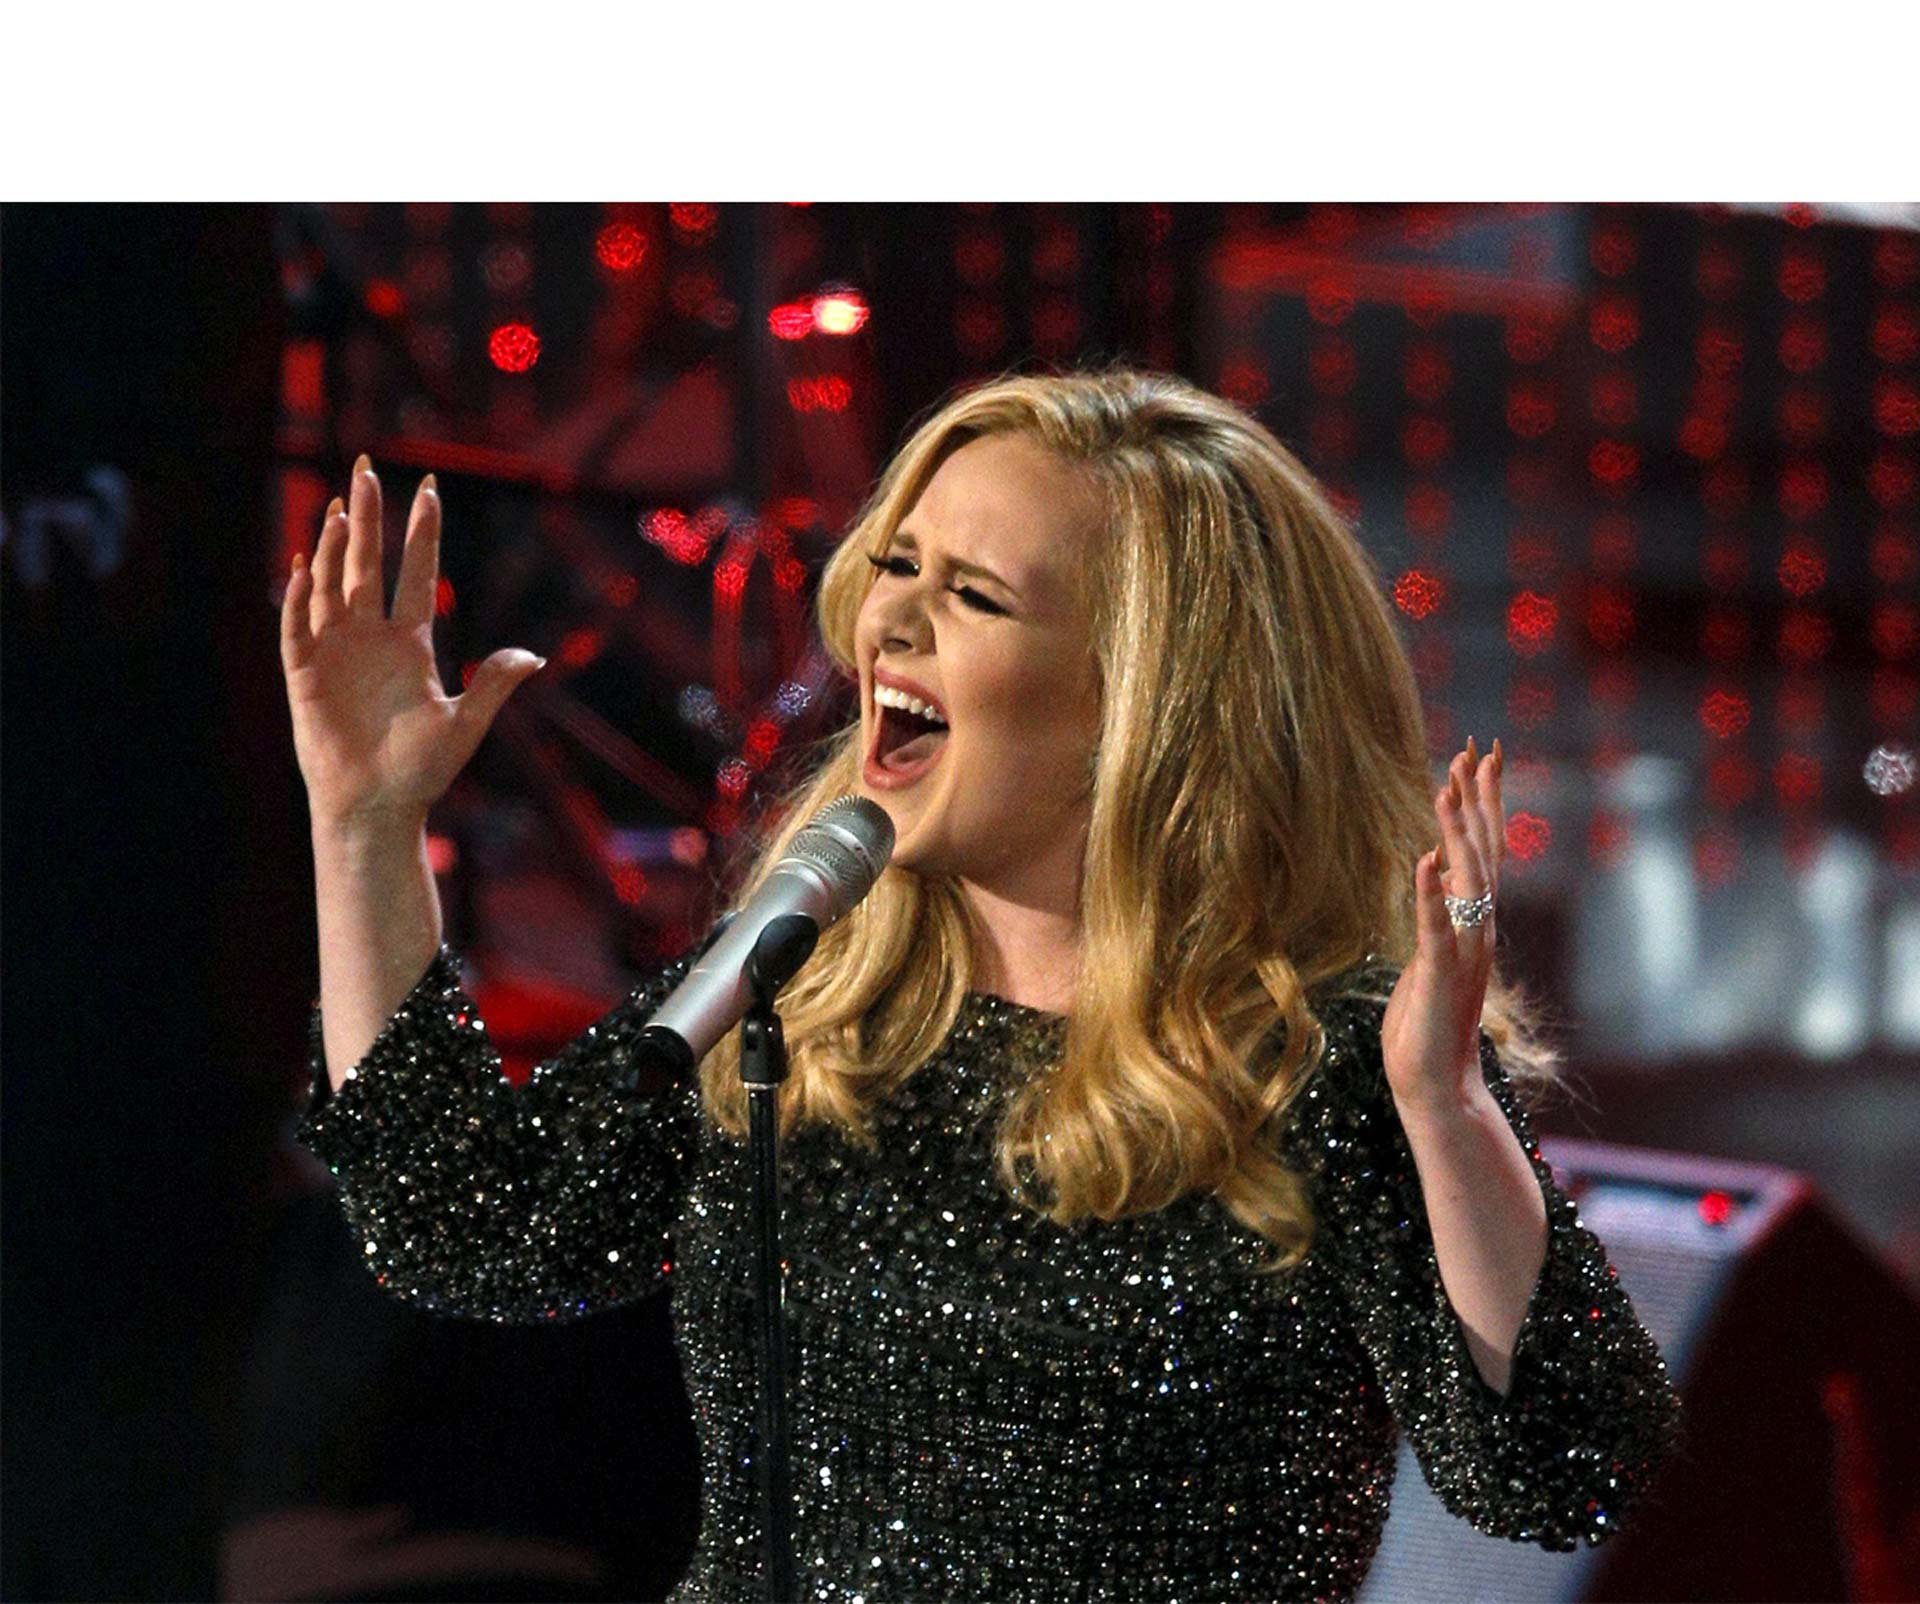 Esta vez, el músico de Ten Seconds Songs interpretó la canción de Adele en 25 géneros musicales diferentes